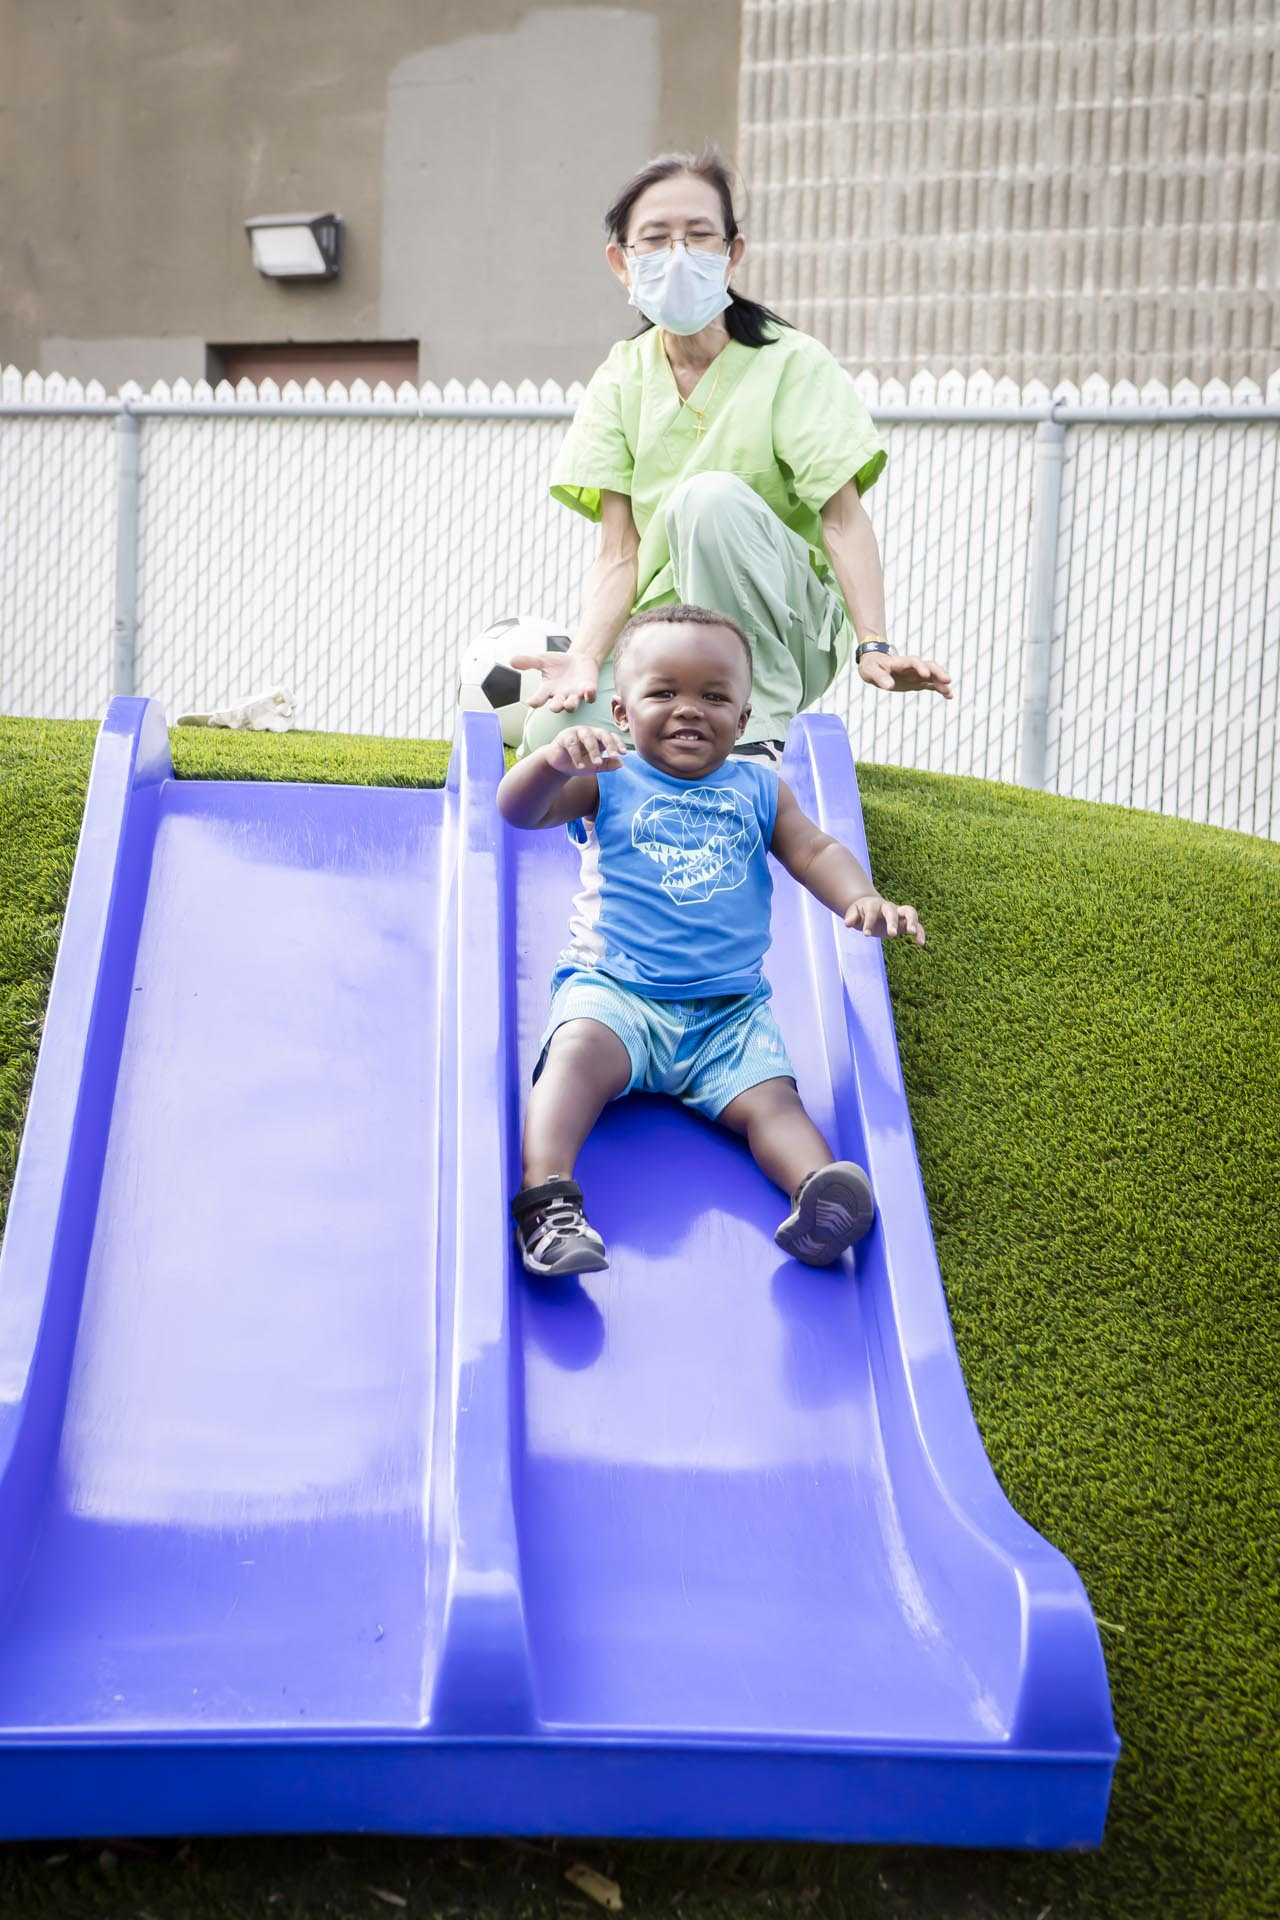 Shot of child and care worker playing on a slide in the Taking Care! outdoor facility